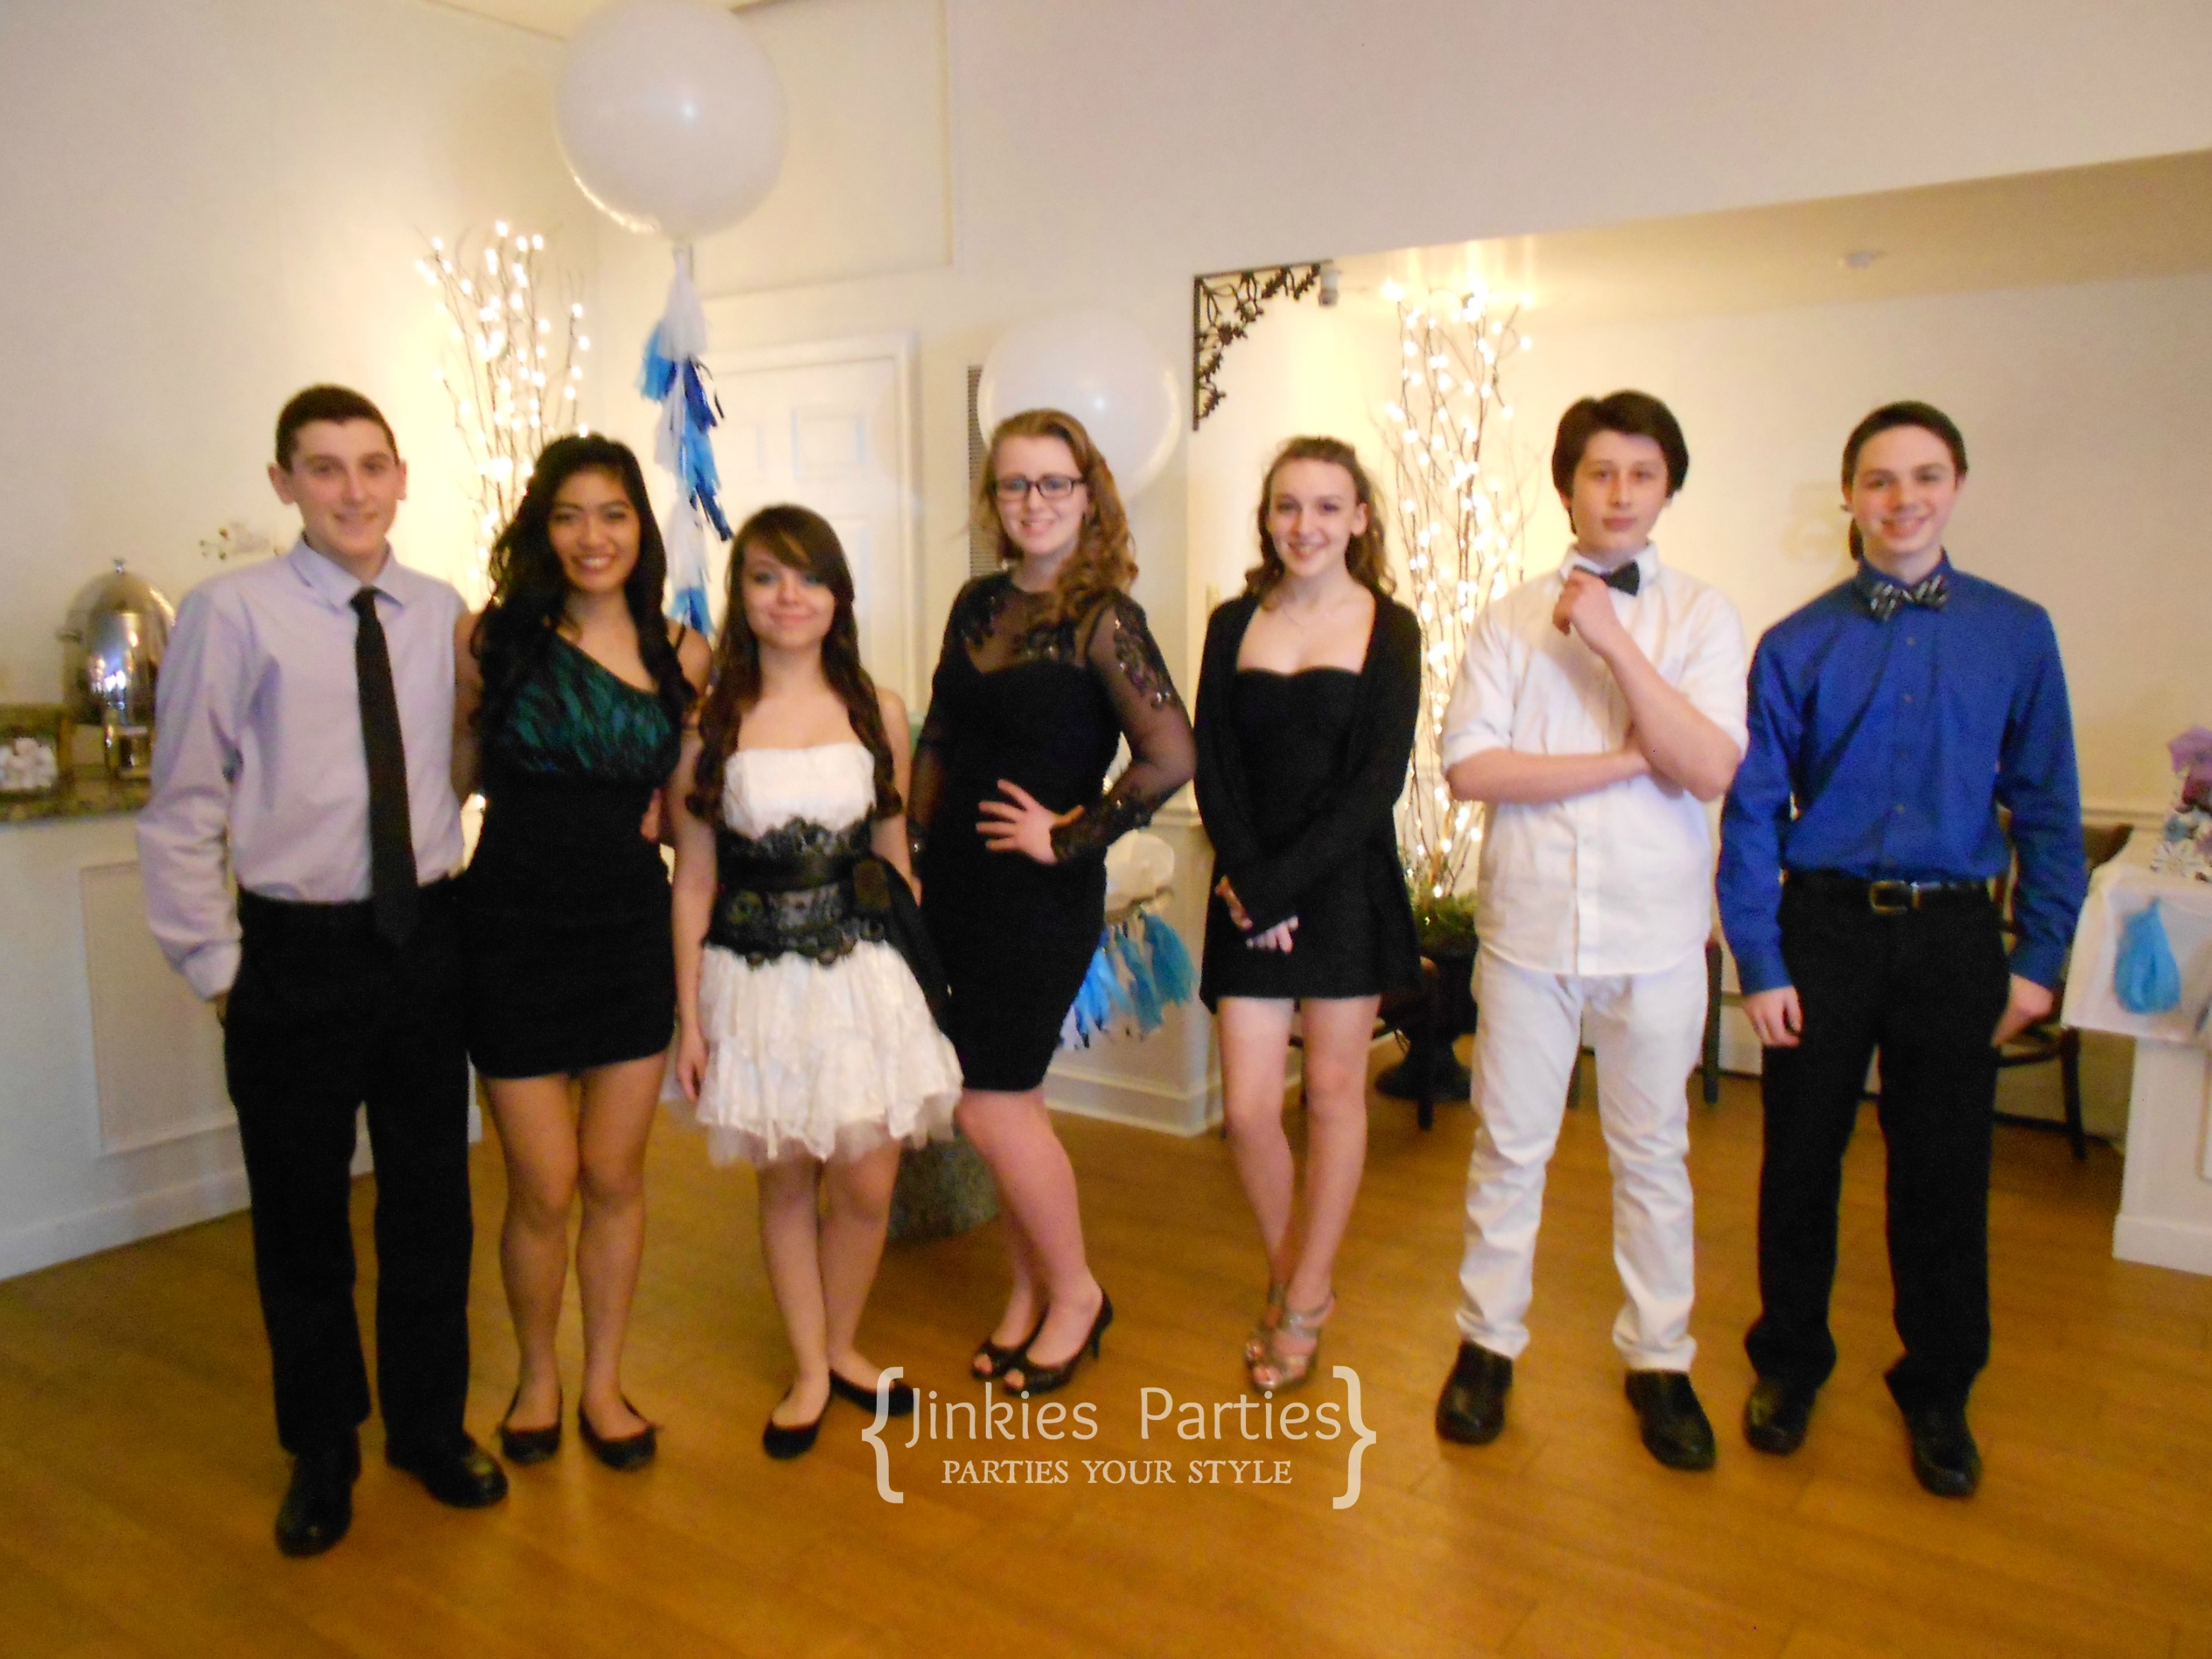 Quince Party Pictures